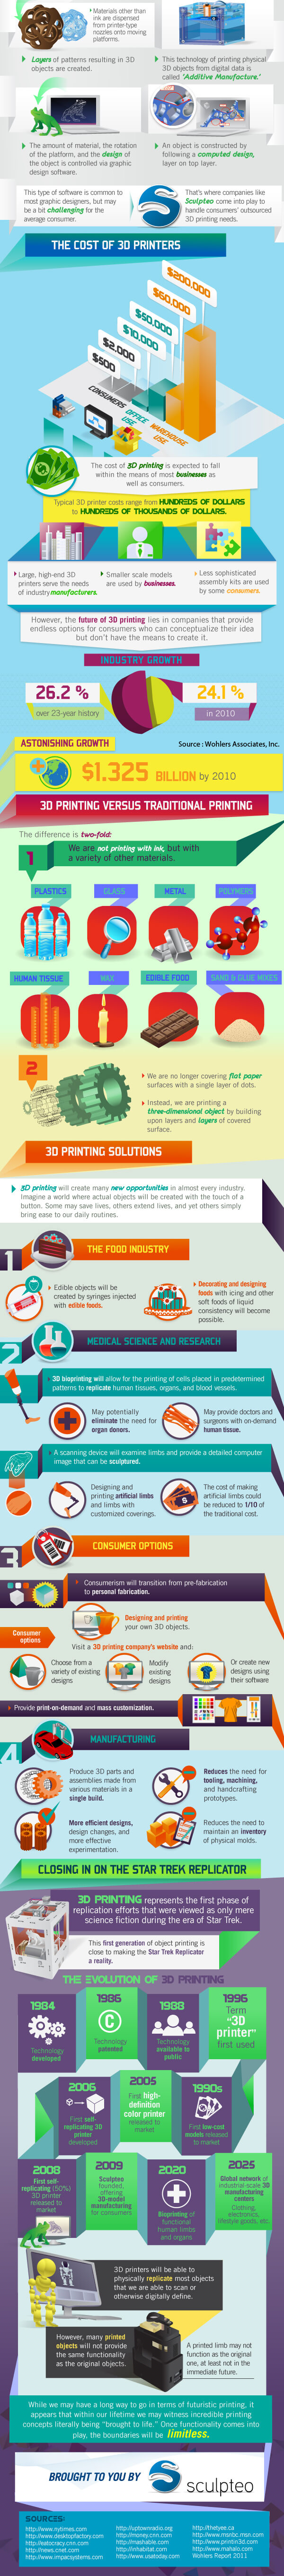 Infographic for 3d printing